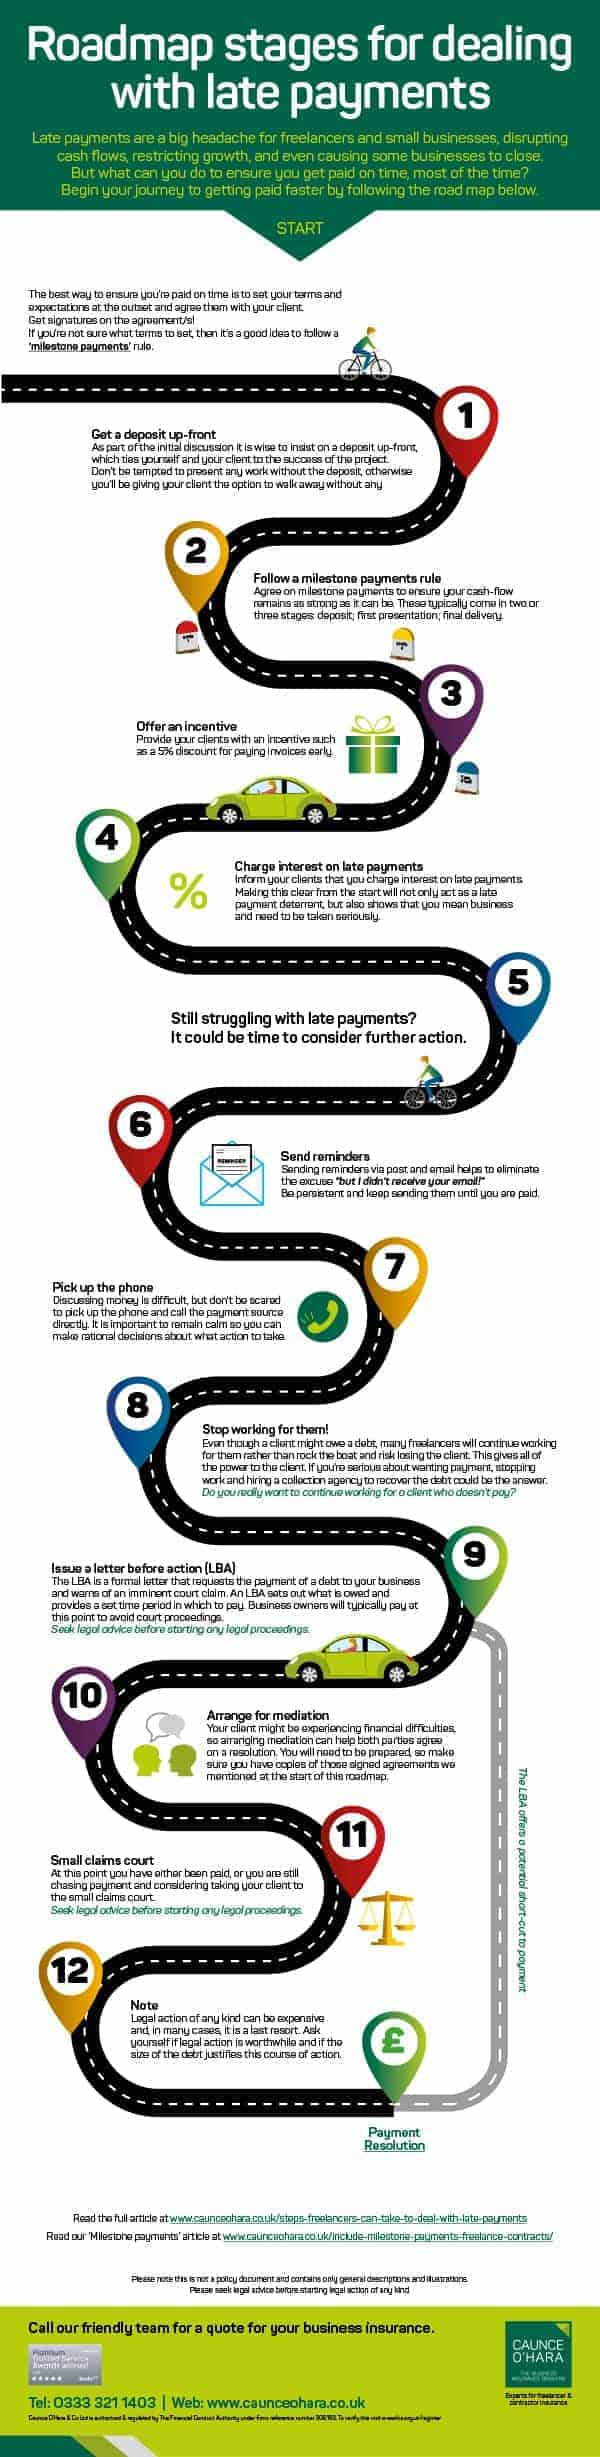 Roadmap stages for dealing with late payments